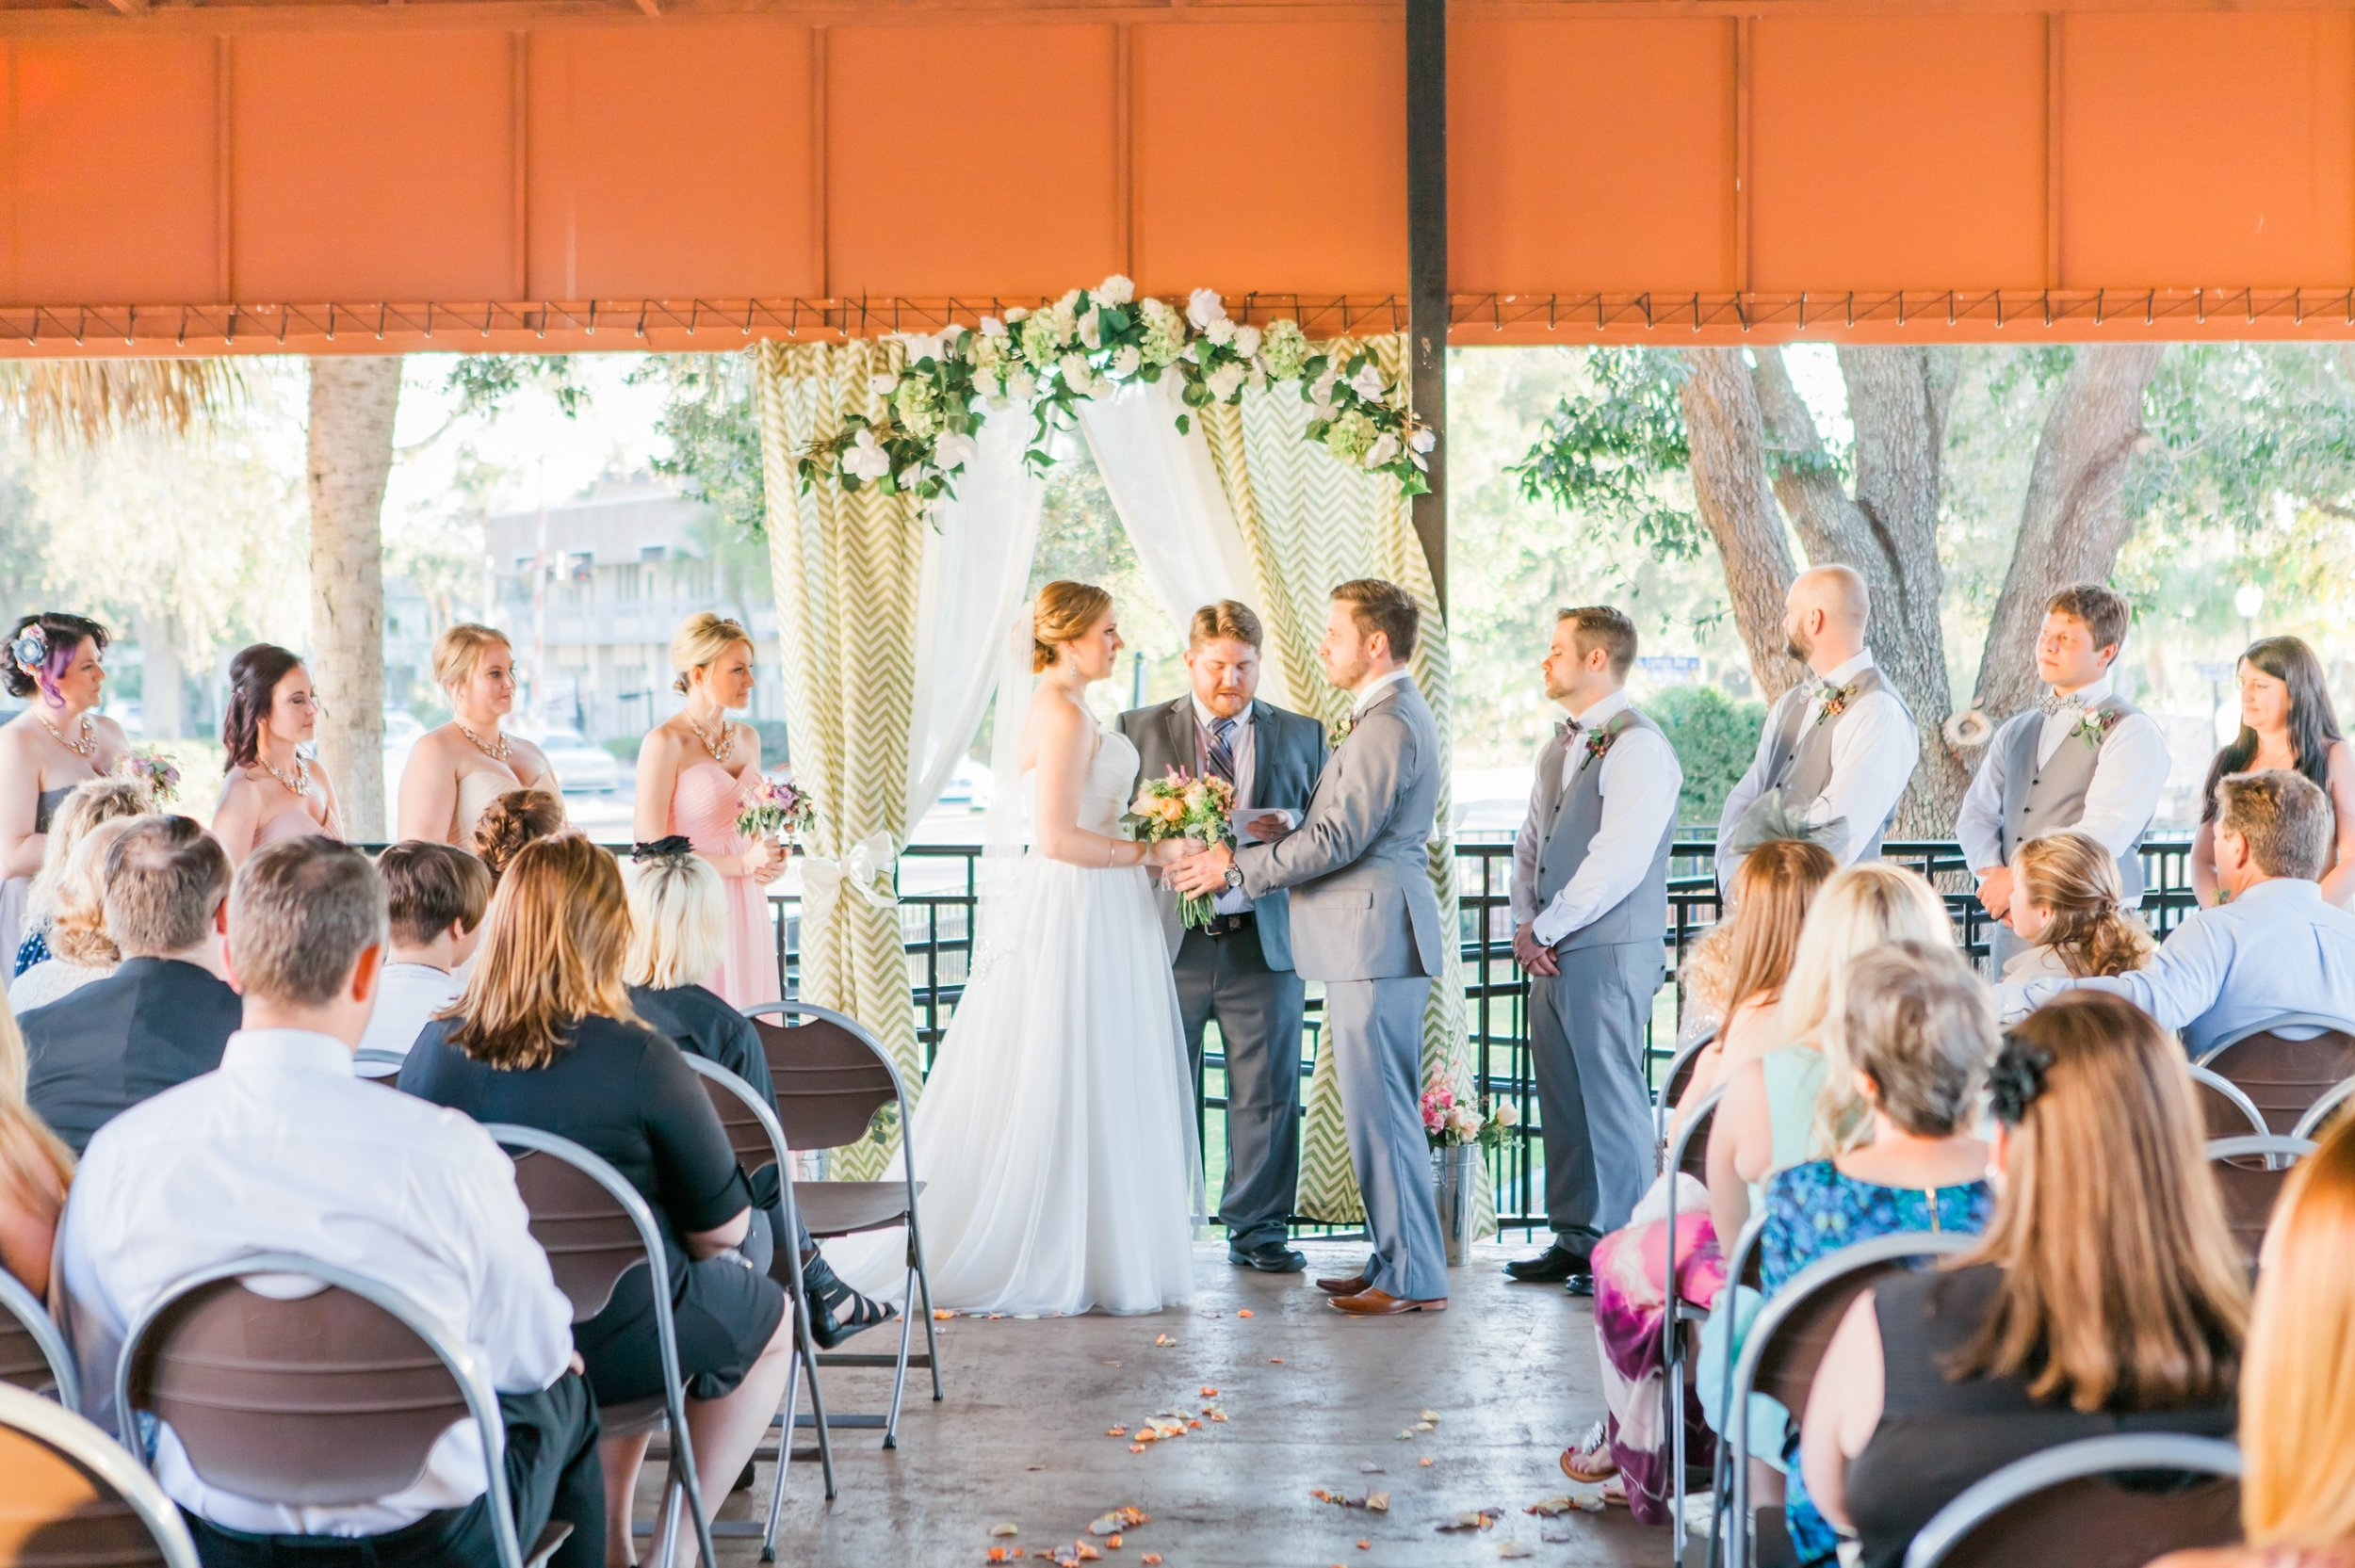 Rustic Chic wedding ceremony at the Winter Park Farmer's Market